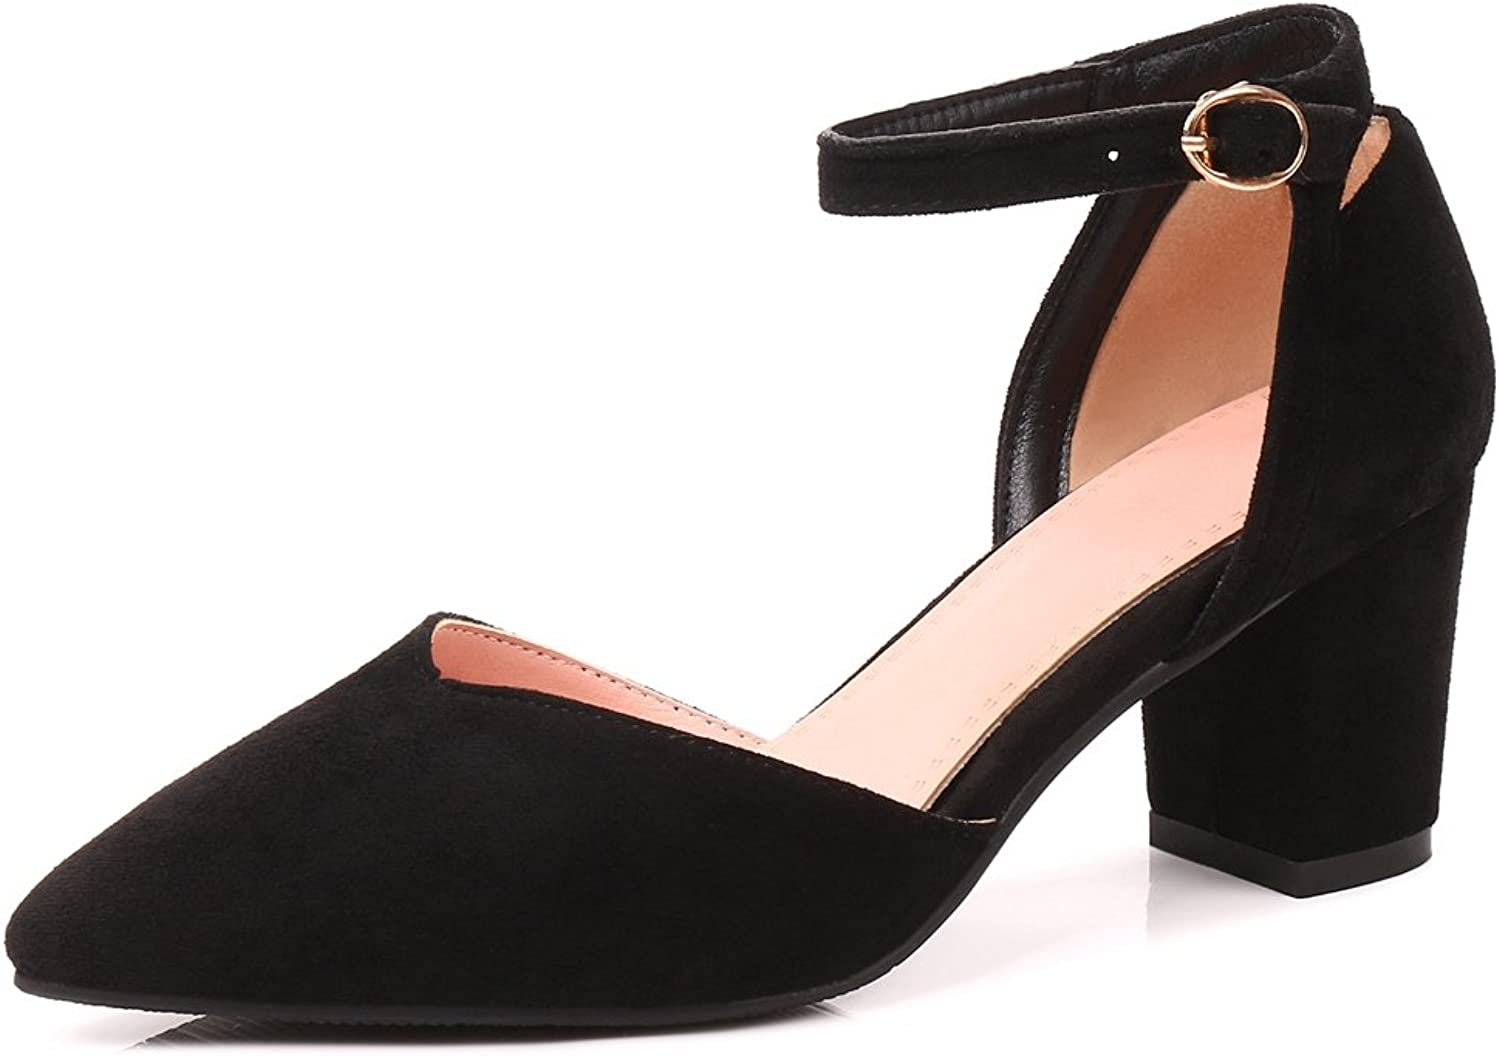 SaraIris Women's Chunky High Heel Pointed Toe Heels D'Orsay Casual Ankle Strap Pumps